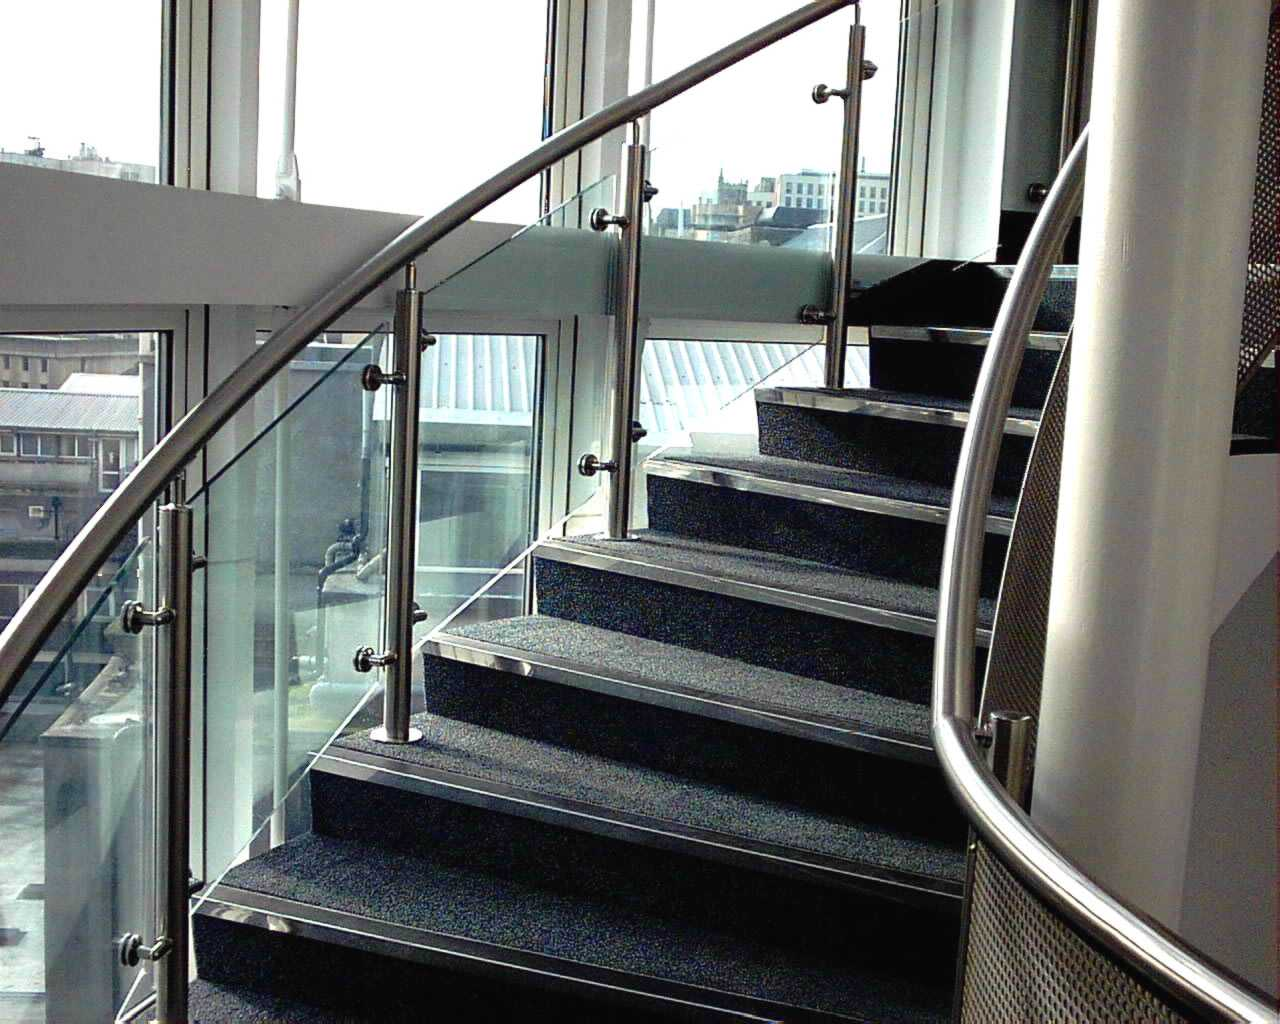 sweeping stainless steel handrail on staircase